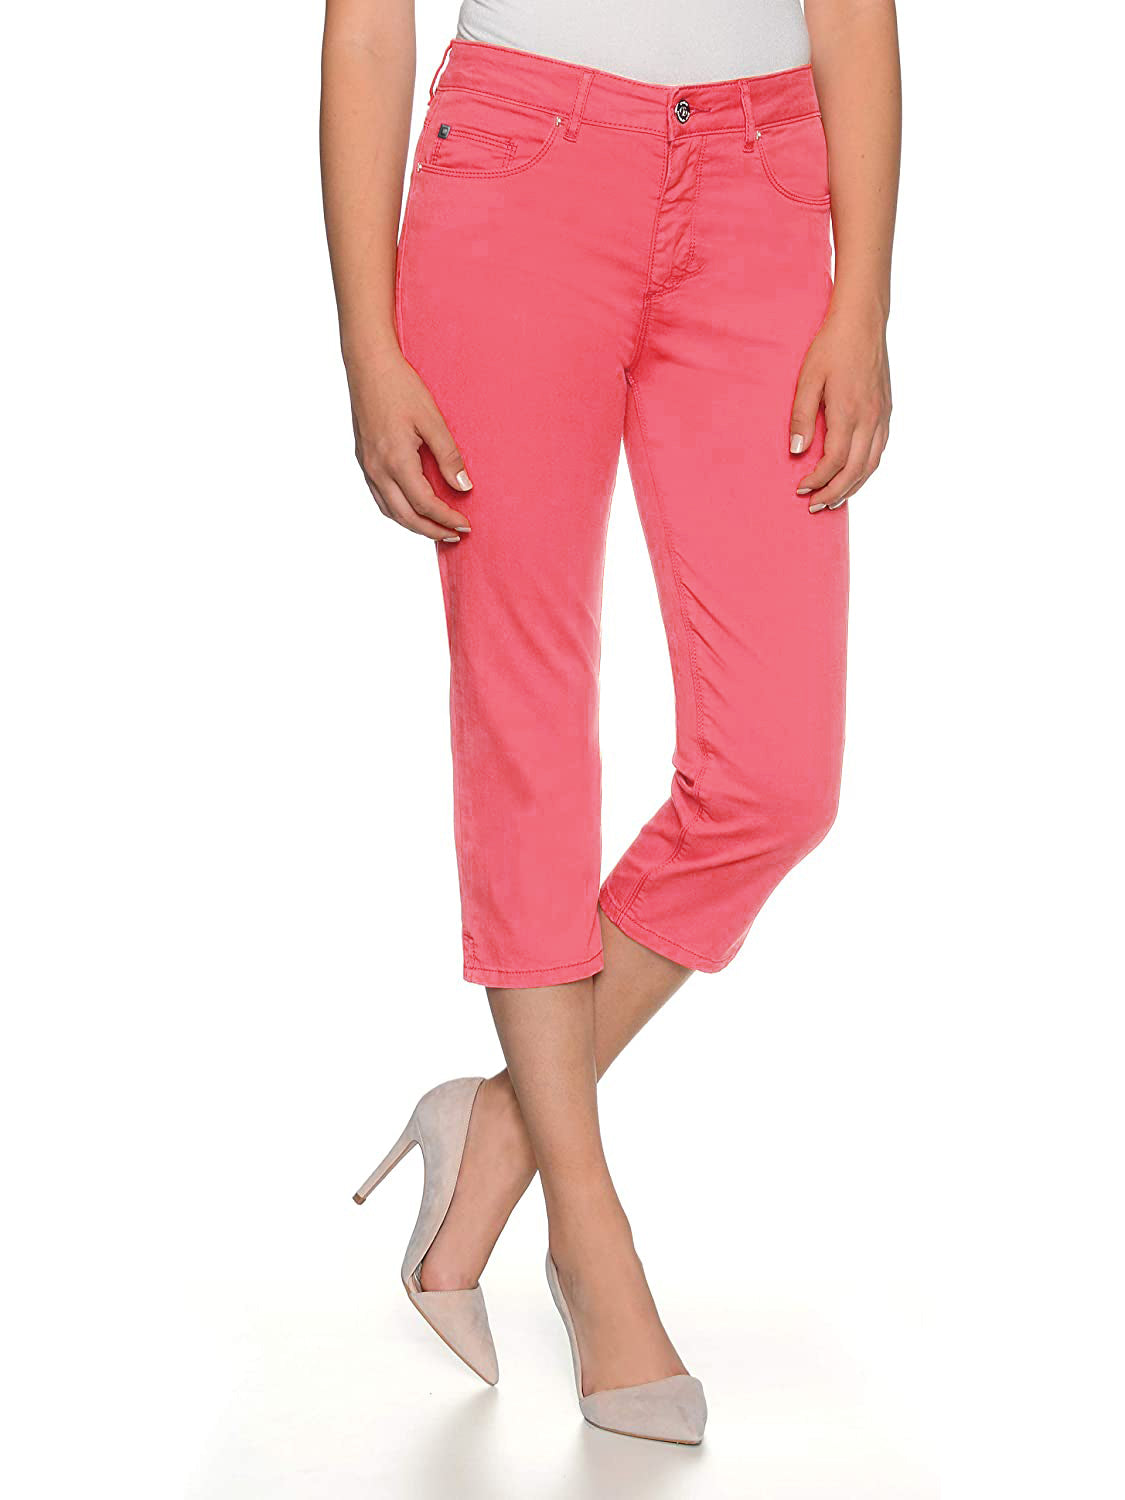 Stooker Slim Fit Stretch Capri For Ladies-Light Hot Pink-F175